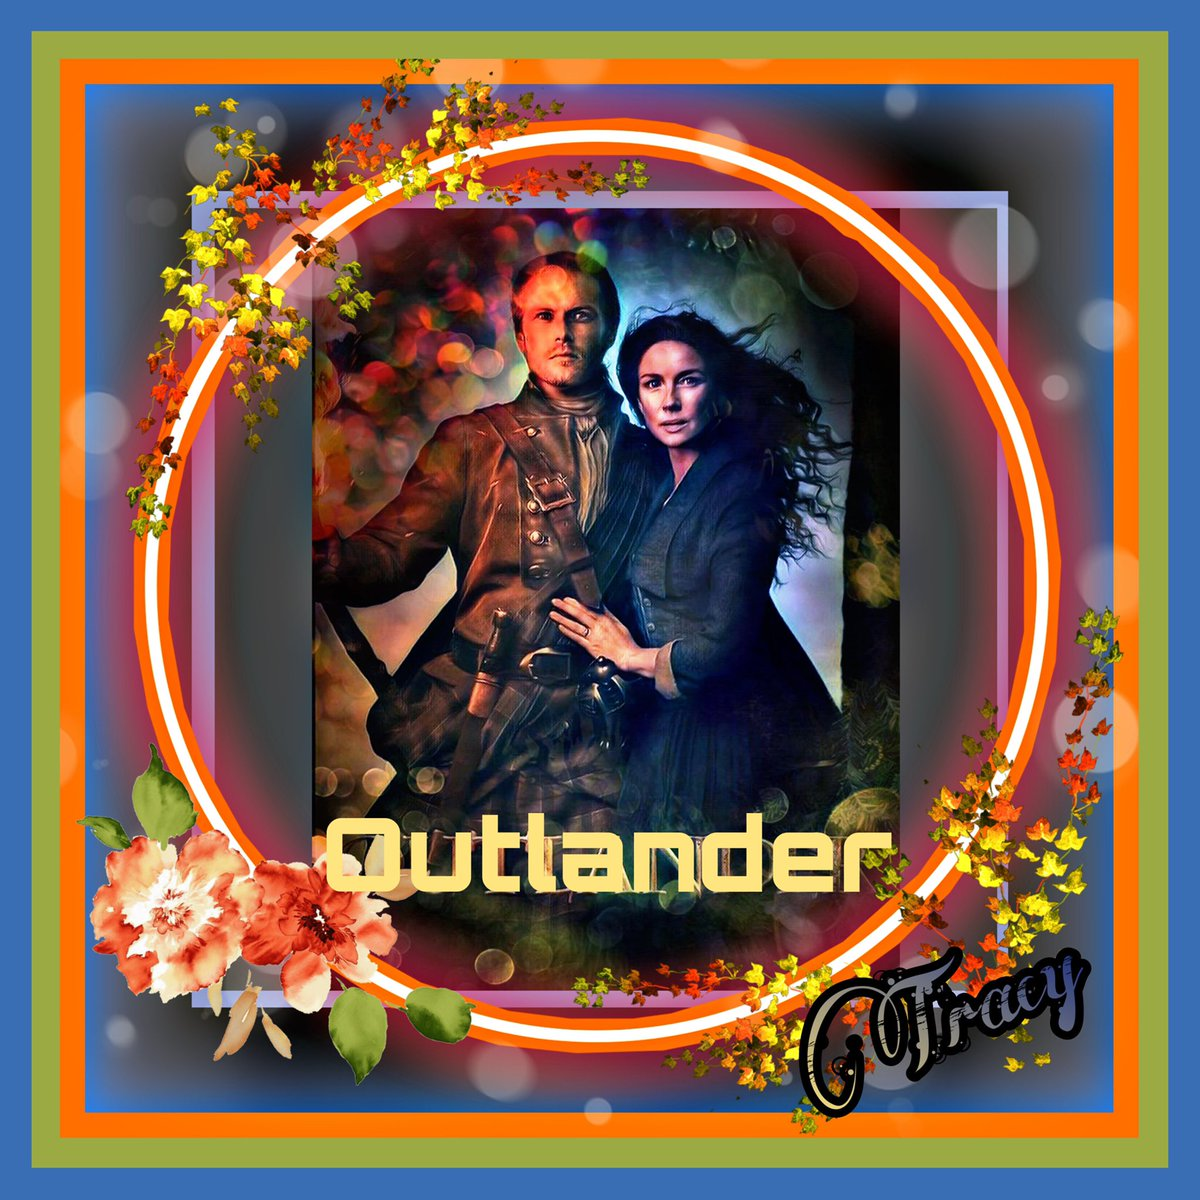 Good Morning Dearest #Outlanderfamily🥰🧡🏴󠁧󠁢󠁳󠁣󠁴󠁿 @caitrionambalfe @SamHeughan @edie_rische @birdyblue51 @WHood0702 @KayAdeReviews2 @SonjaNi41294318 @fee2360 @CostinaJ @Goddestofhunt @nanfan15 @dianeriddell  Wishing You All A Beautiful Tuesday Everyone #Outlander5